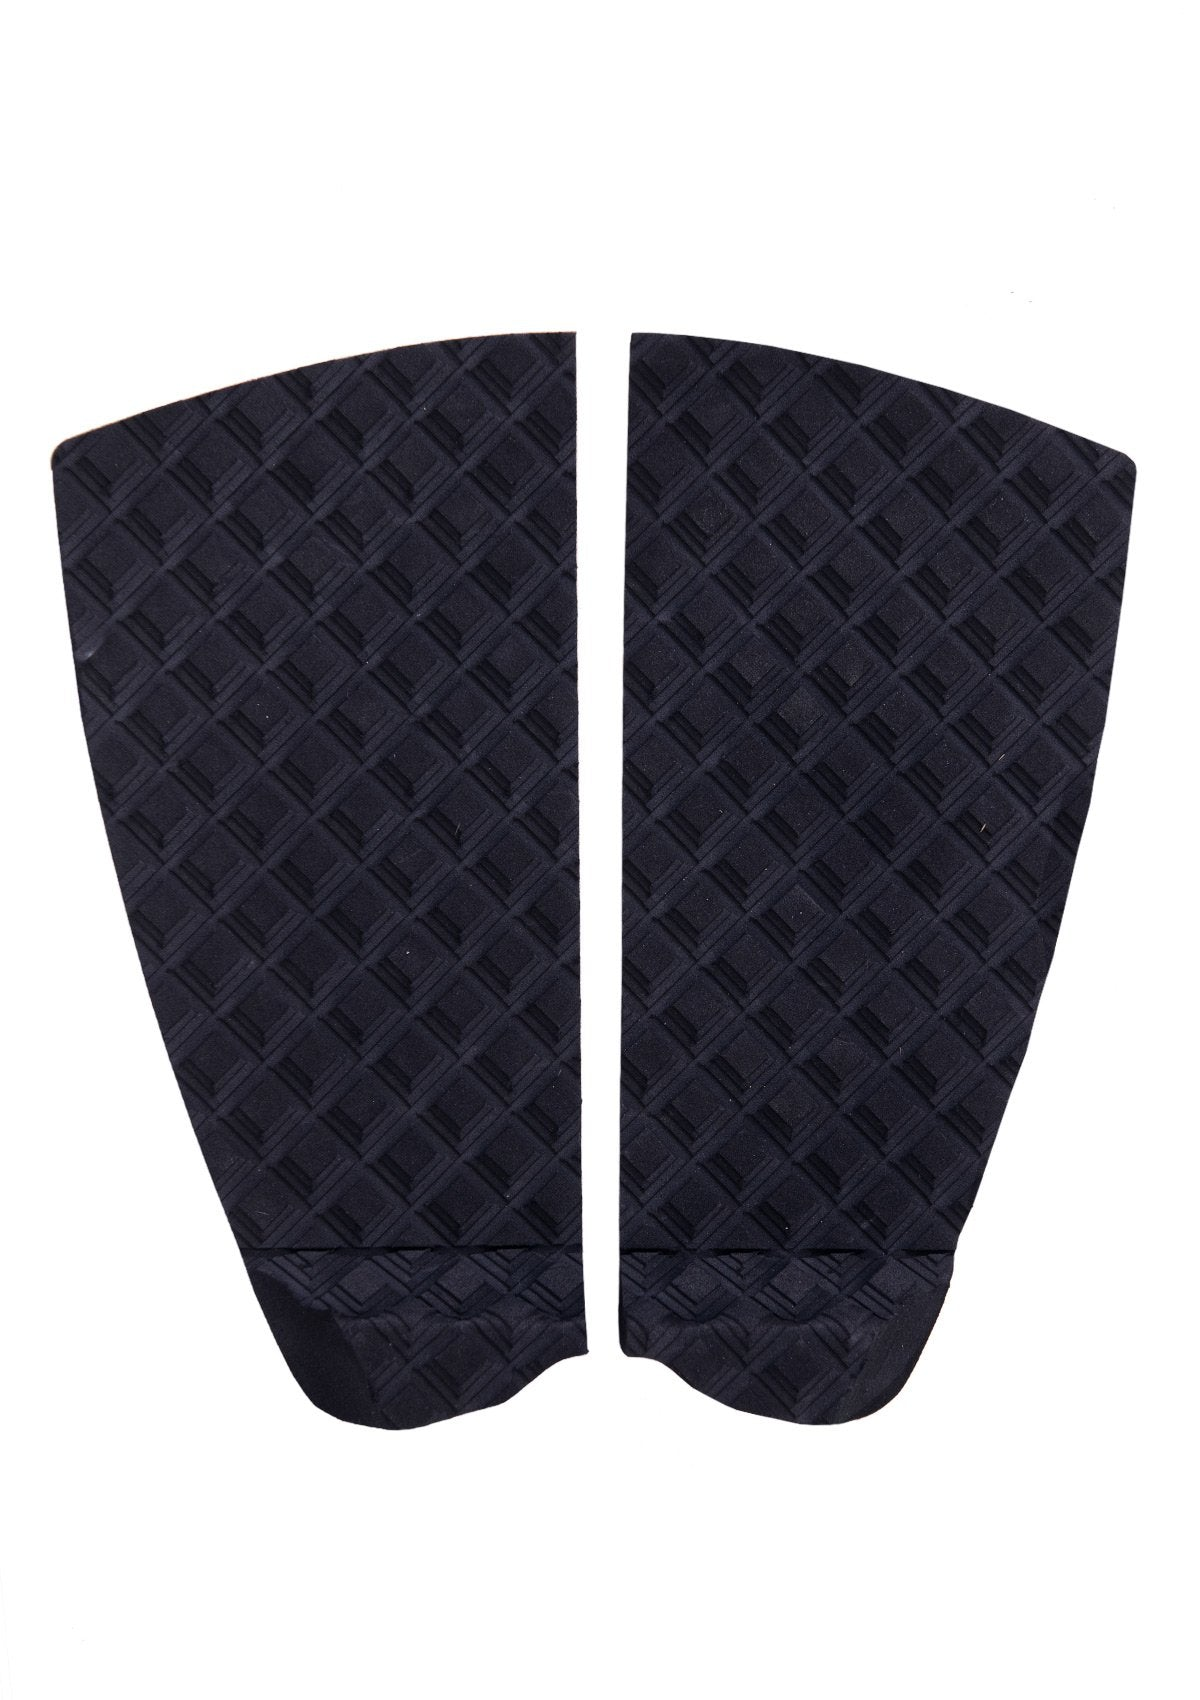 2 Piece Surfboard Traction Pad